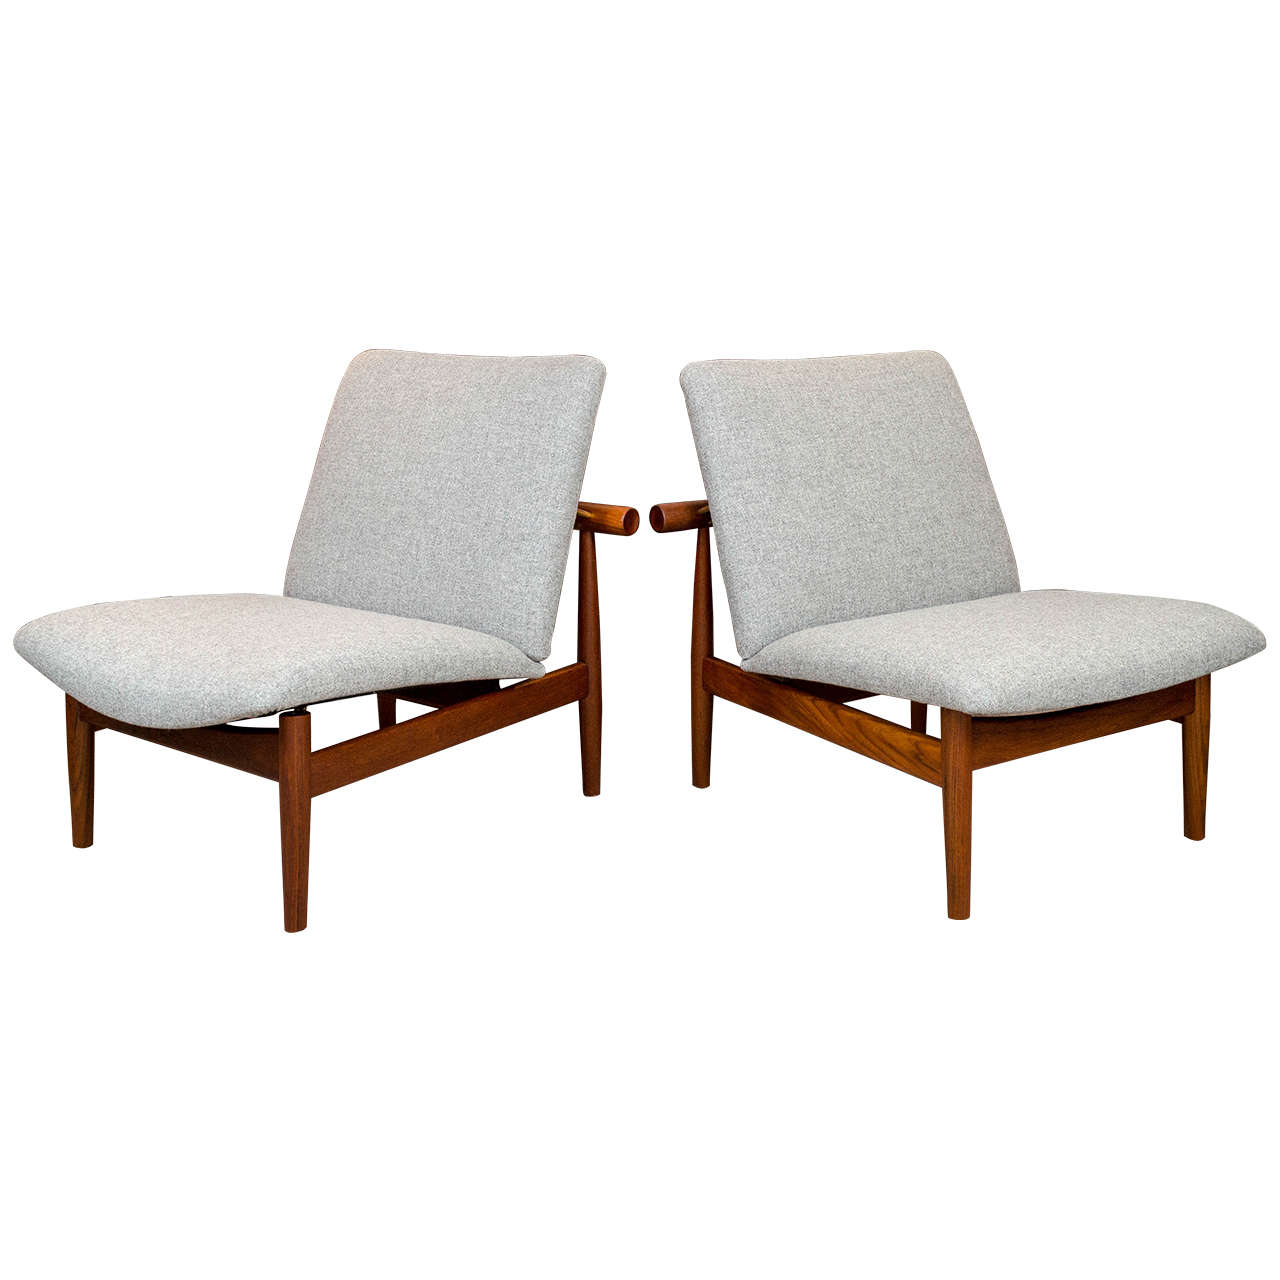 Finn Juhl Japan Chairs By France And Sons Denmark At 1stdibs